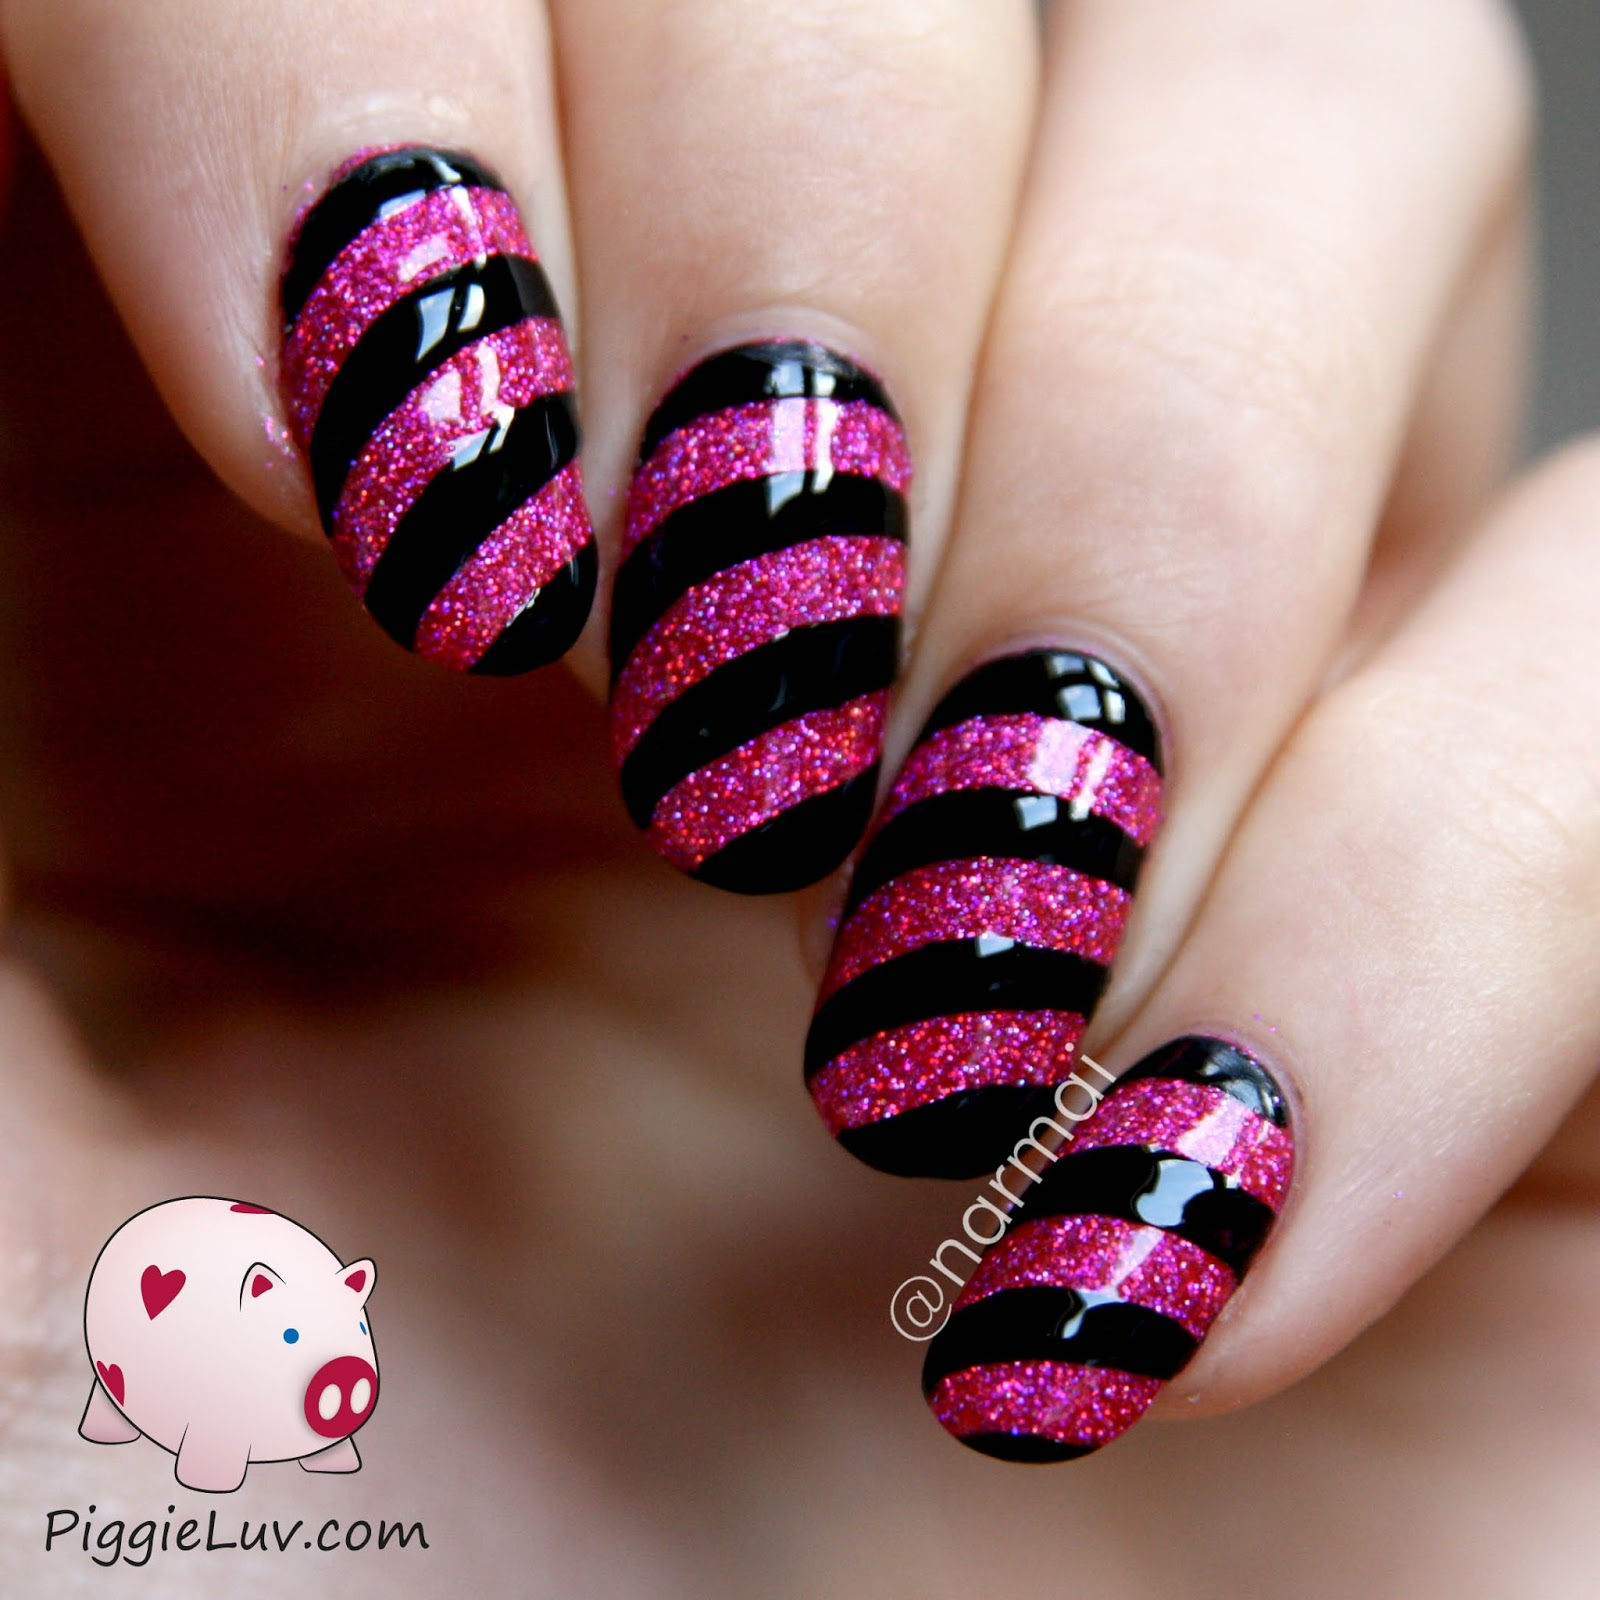 Piggieluv sparkly nails with girly bits razzle dazzle and nail vinyls sparkly nails with girly bits razzle dazzle and nail vinyls prinsesfo Gallery